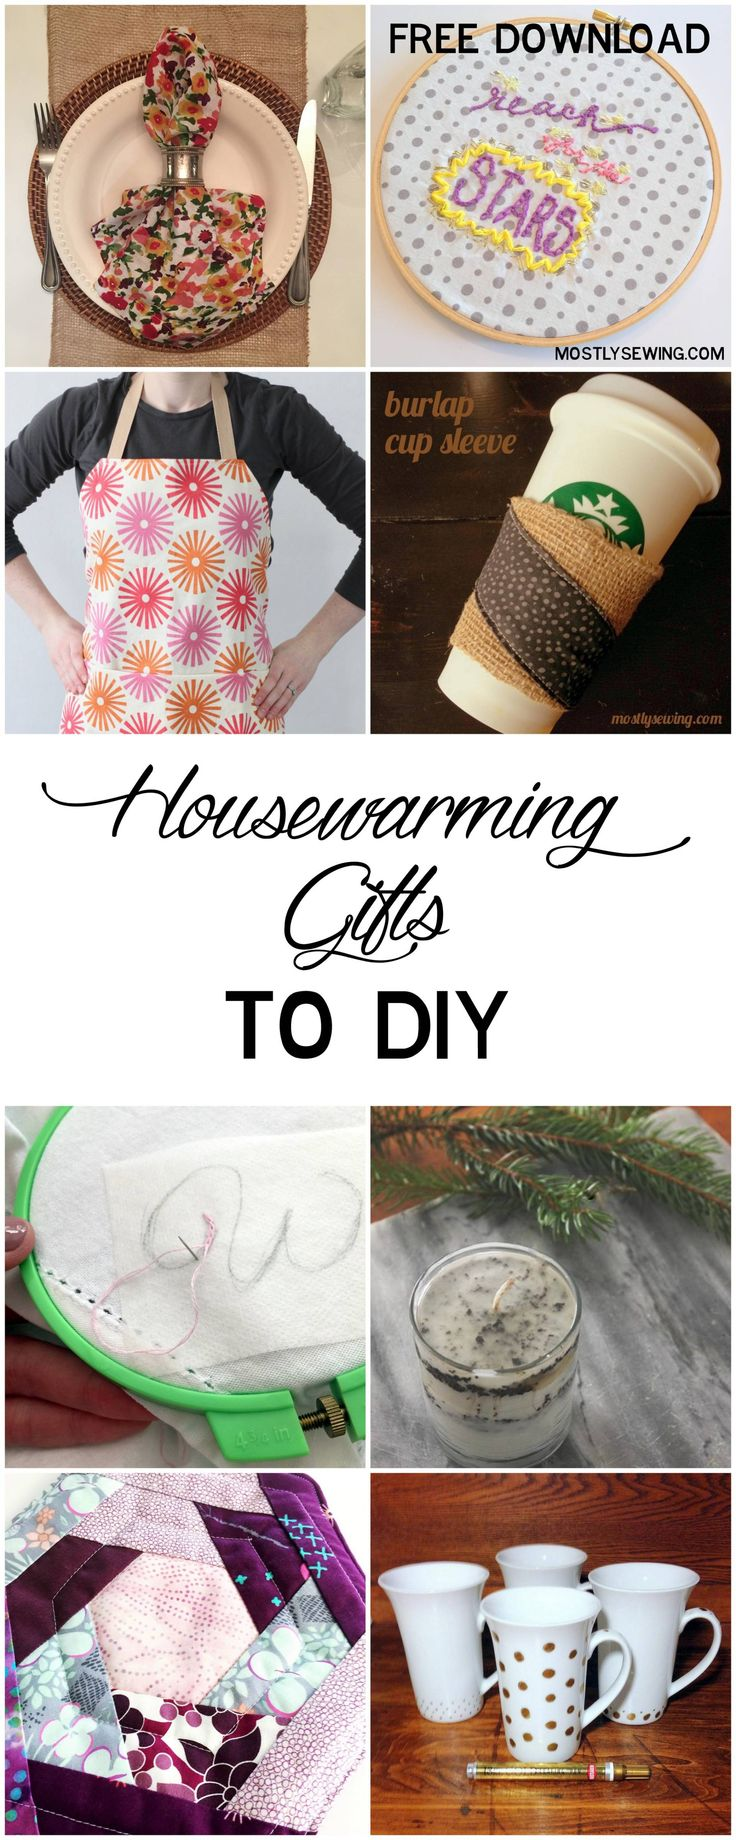 8 Simple Housewarming Gifts to have on hand when you're visiting a new home